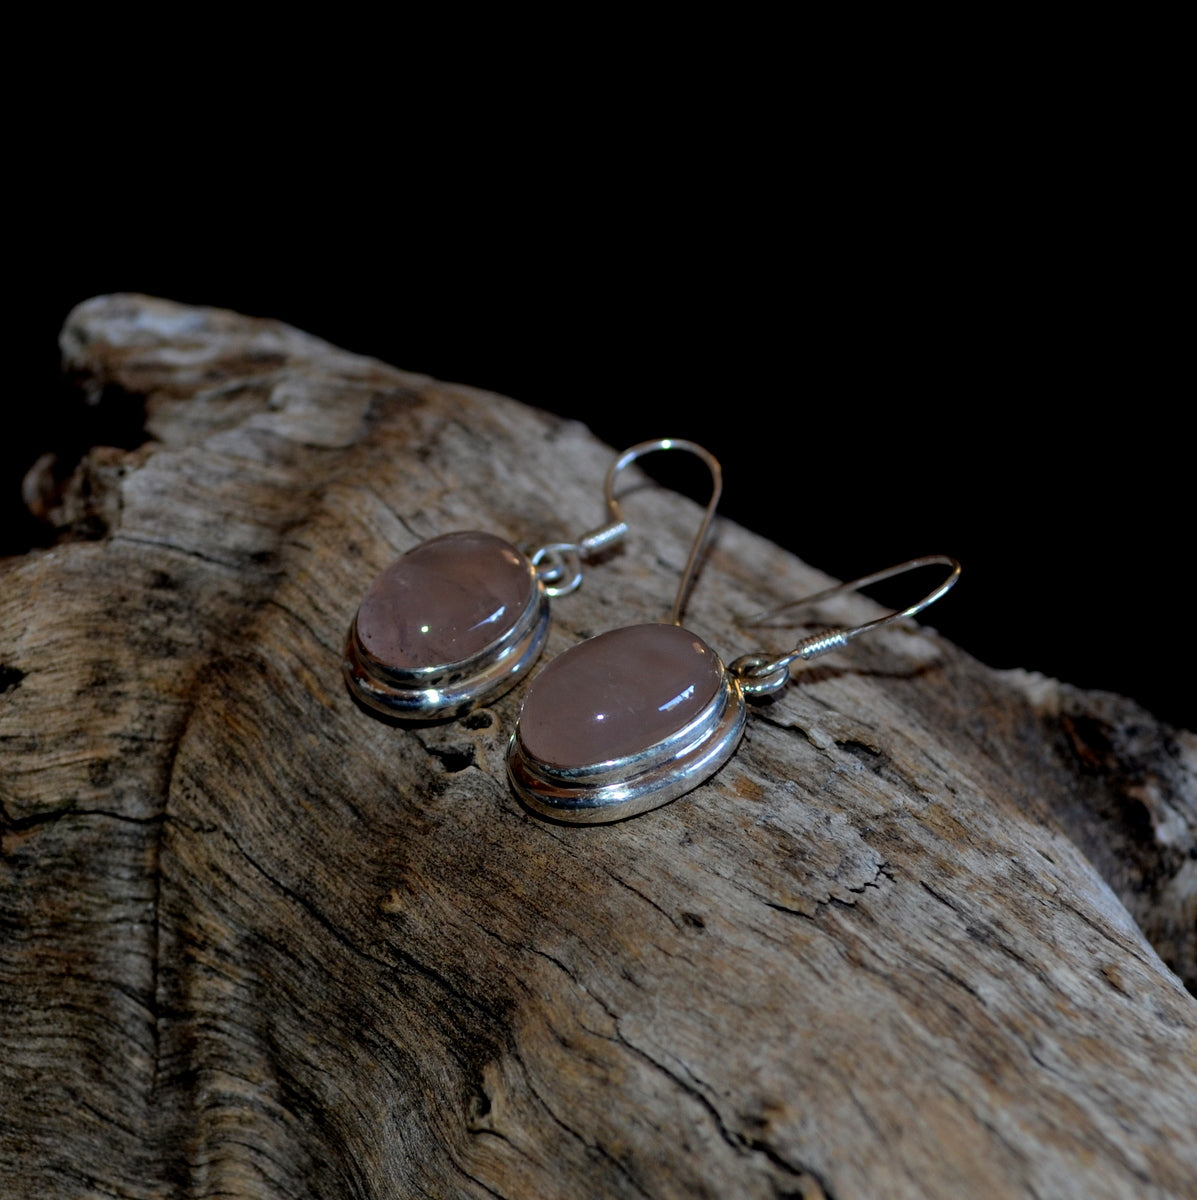 Rose Quartz 925 Sterling Silver Oval Drop Earrings at Illiom Crystals - Afterpay Available